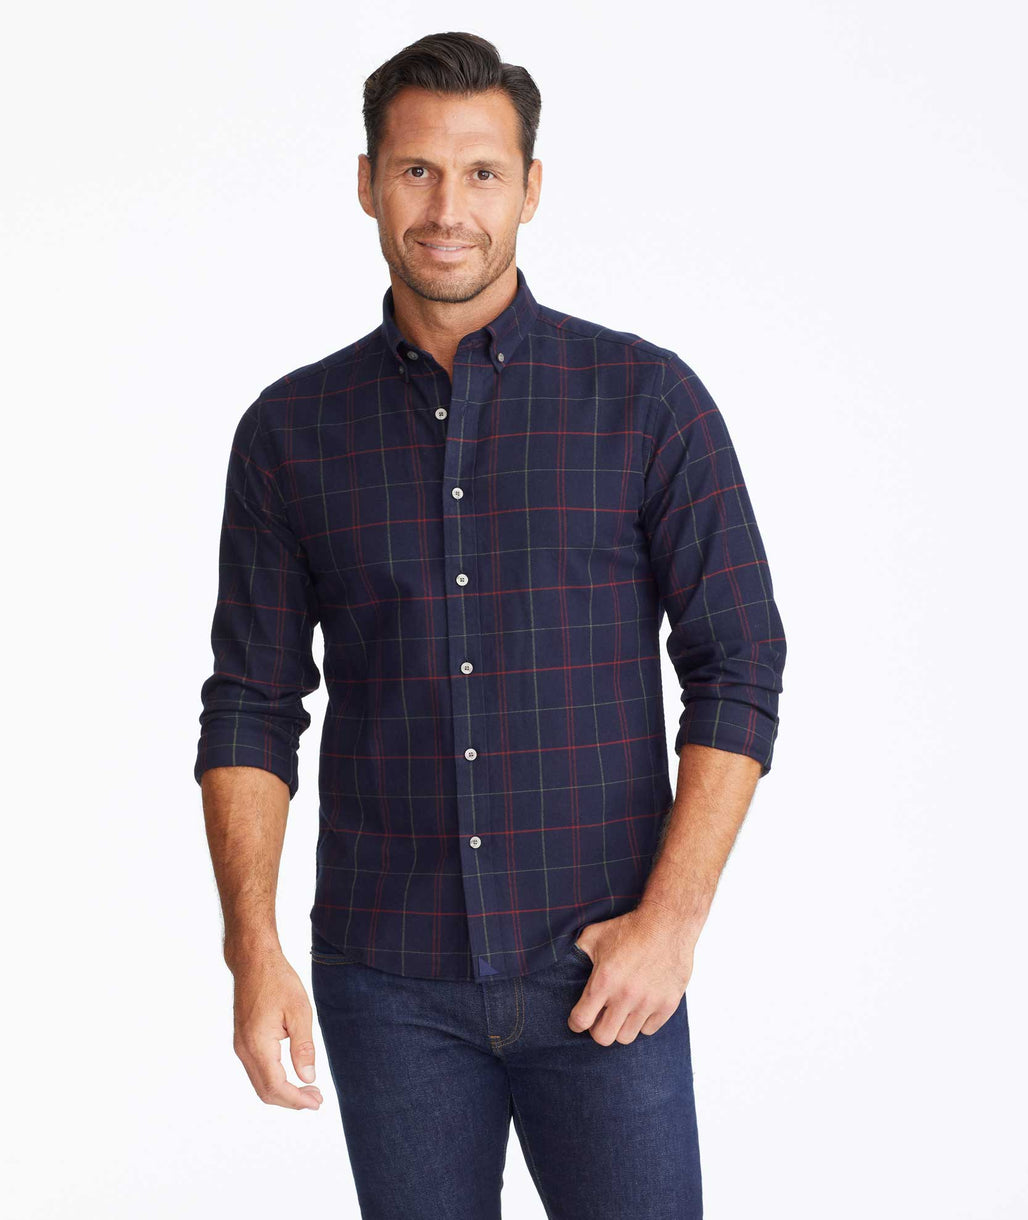 Model wearing a Navy Flannel Cappezzana Shirt